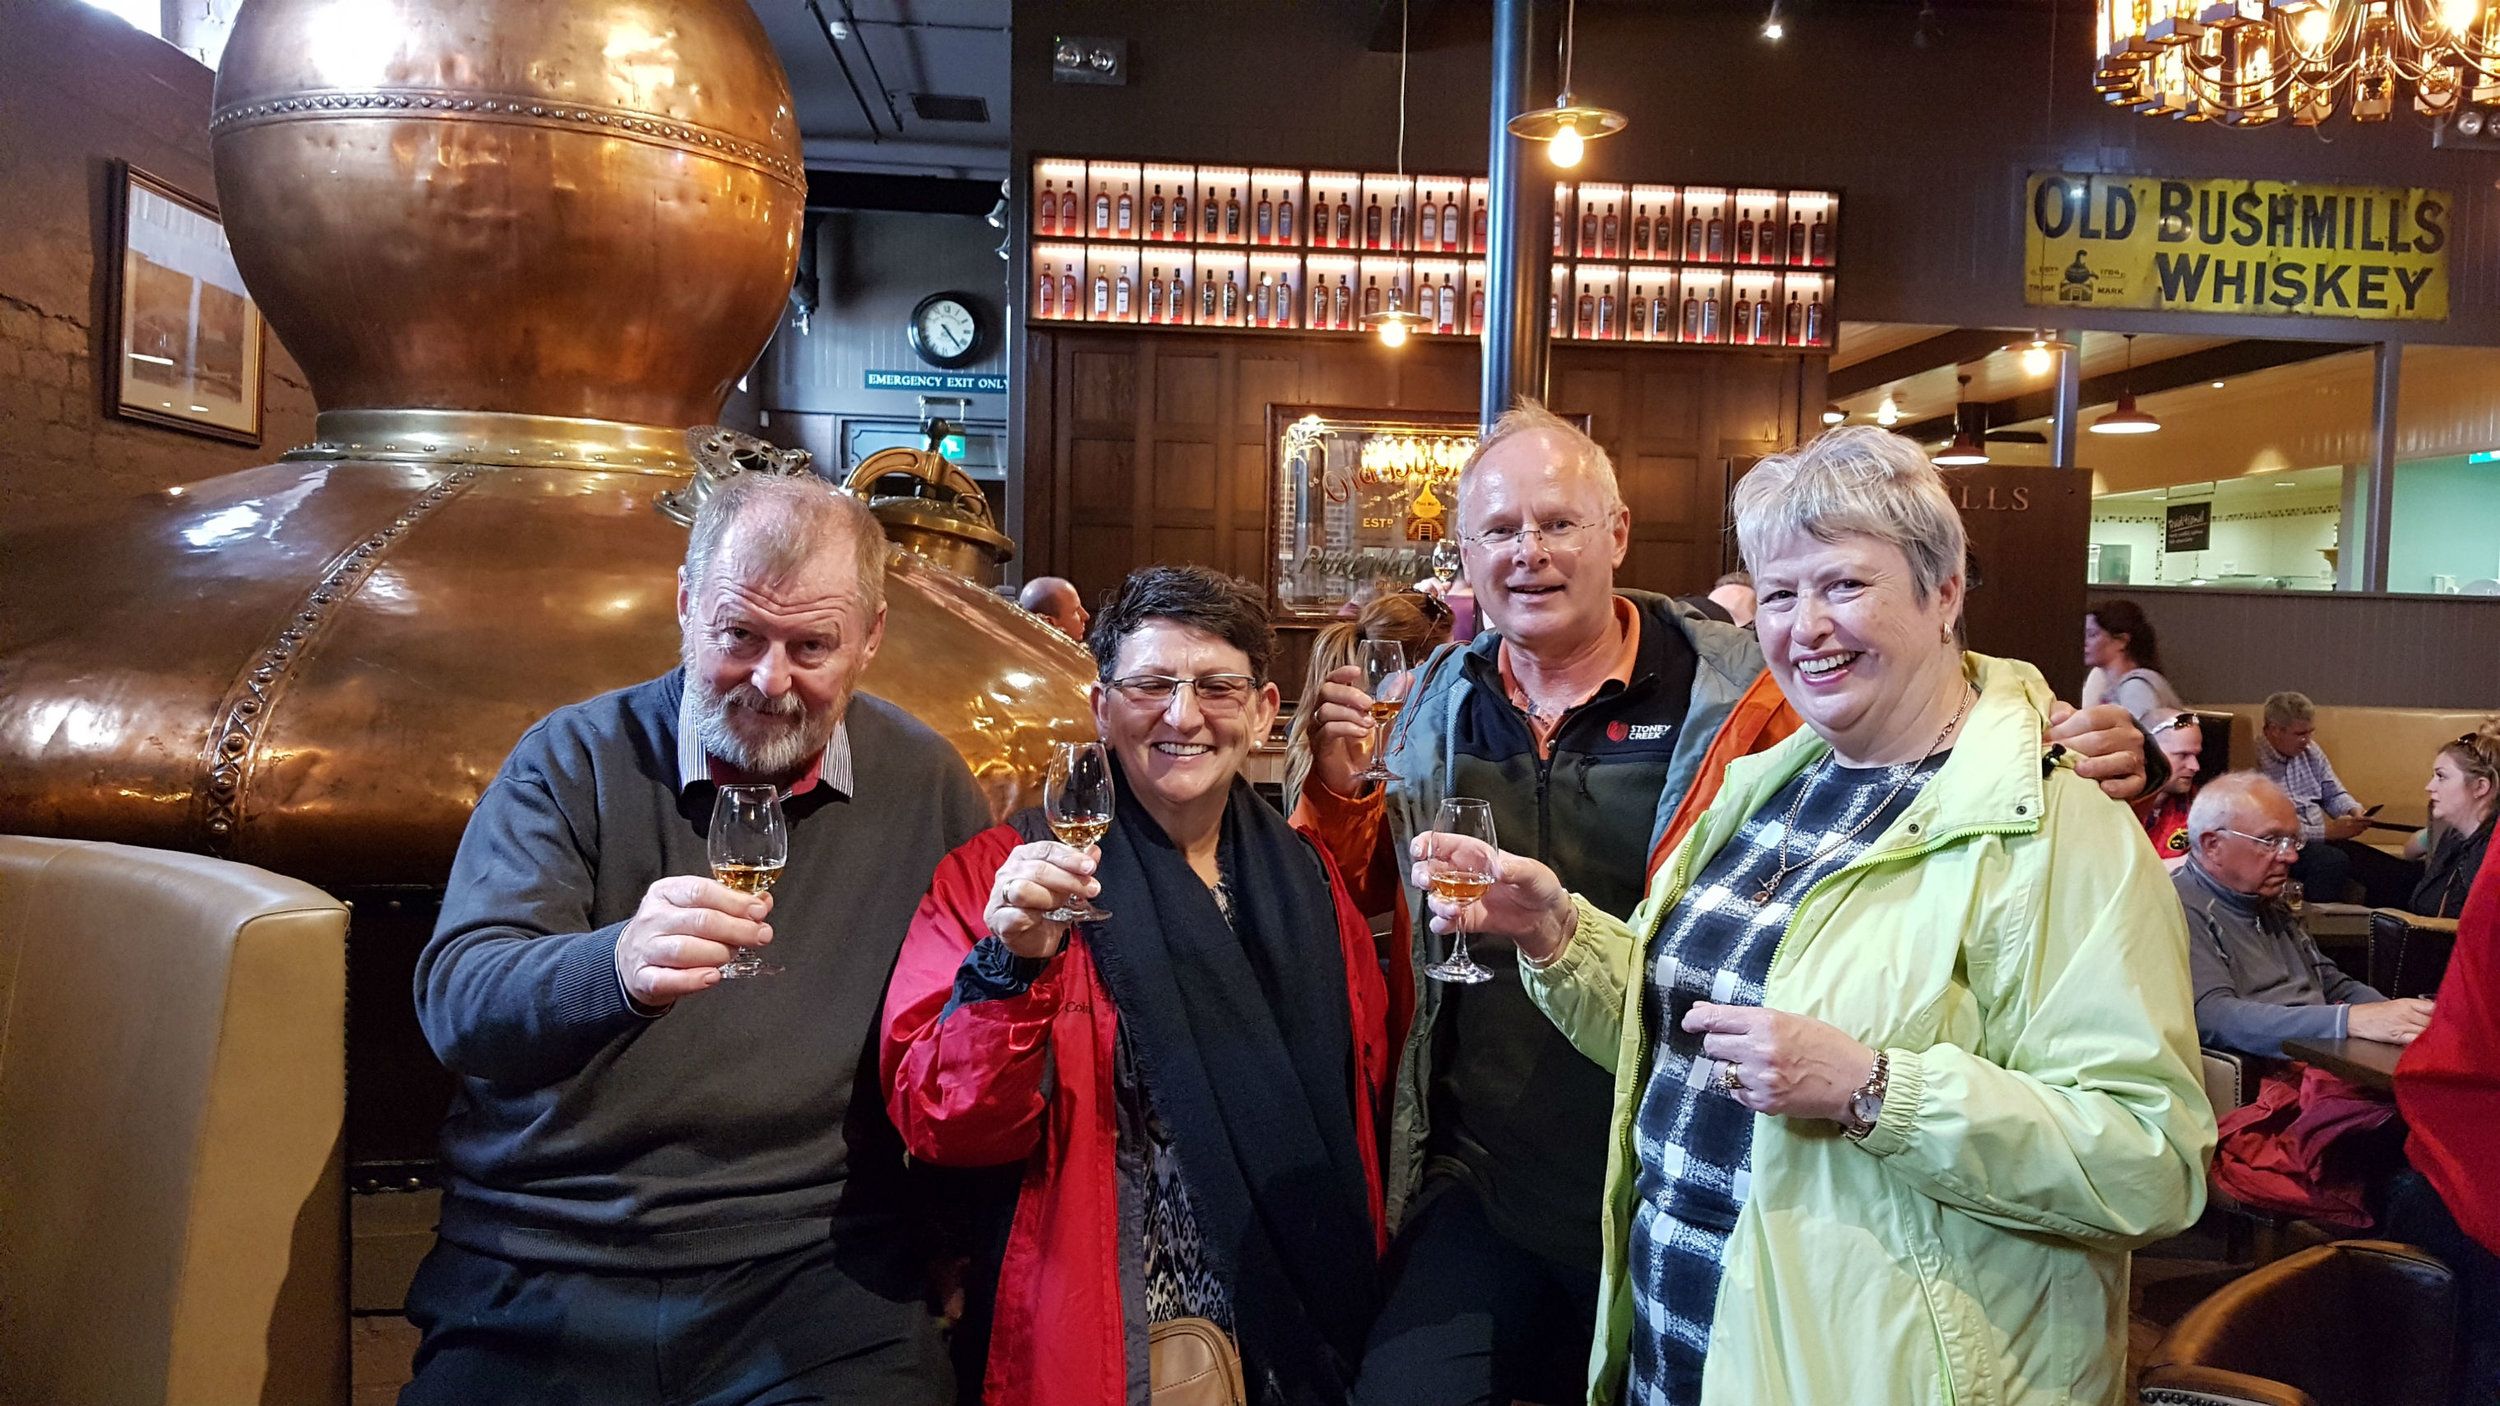 With our friends Fidelma and Marc in Bushmill distillery